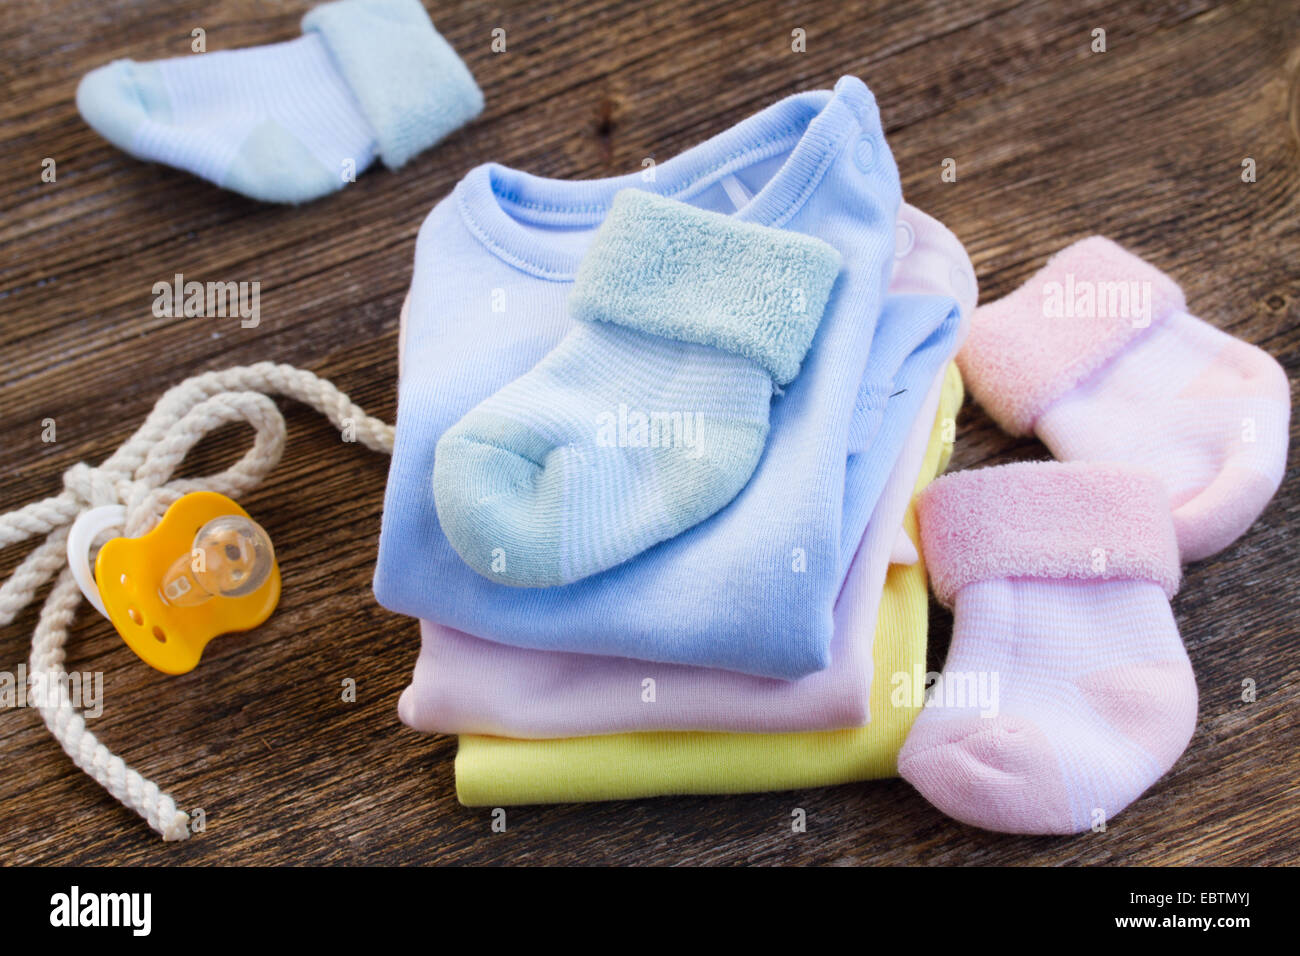 baby clothes - Stock Image